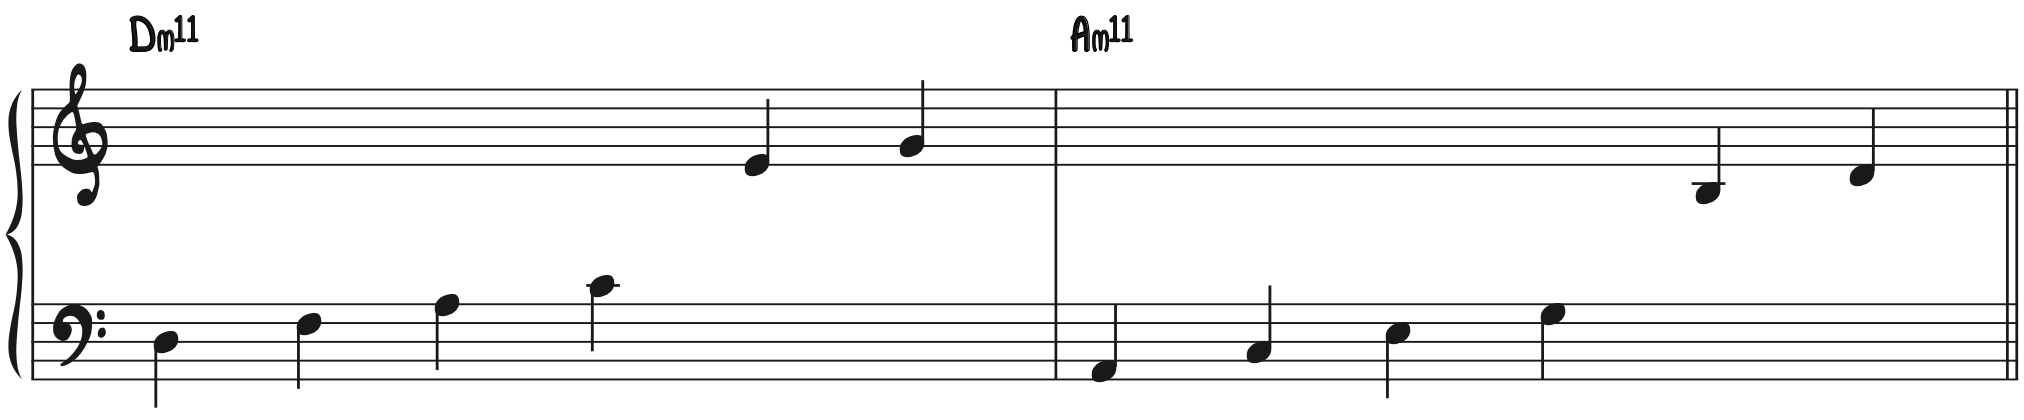 Step 1 Stack Five 3rd (ii and vi) diatonic minor 11 chords